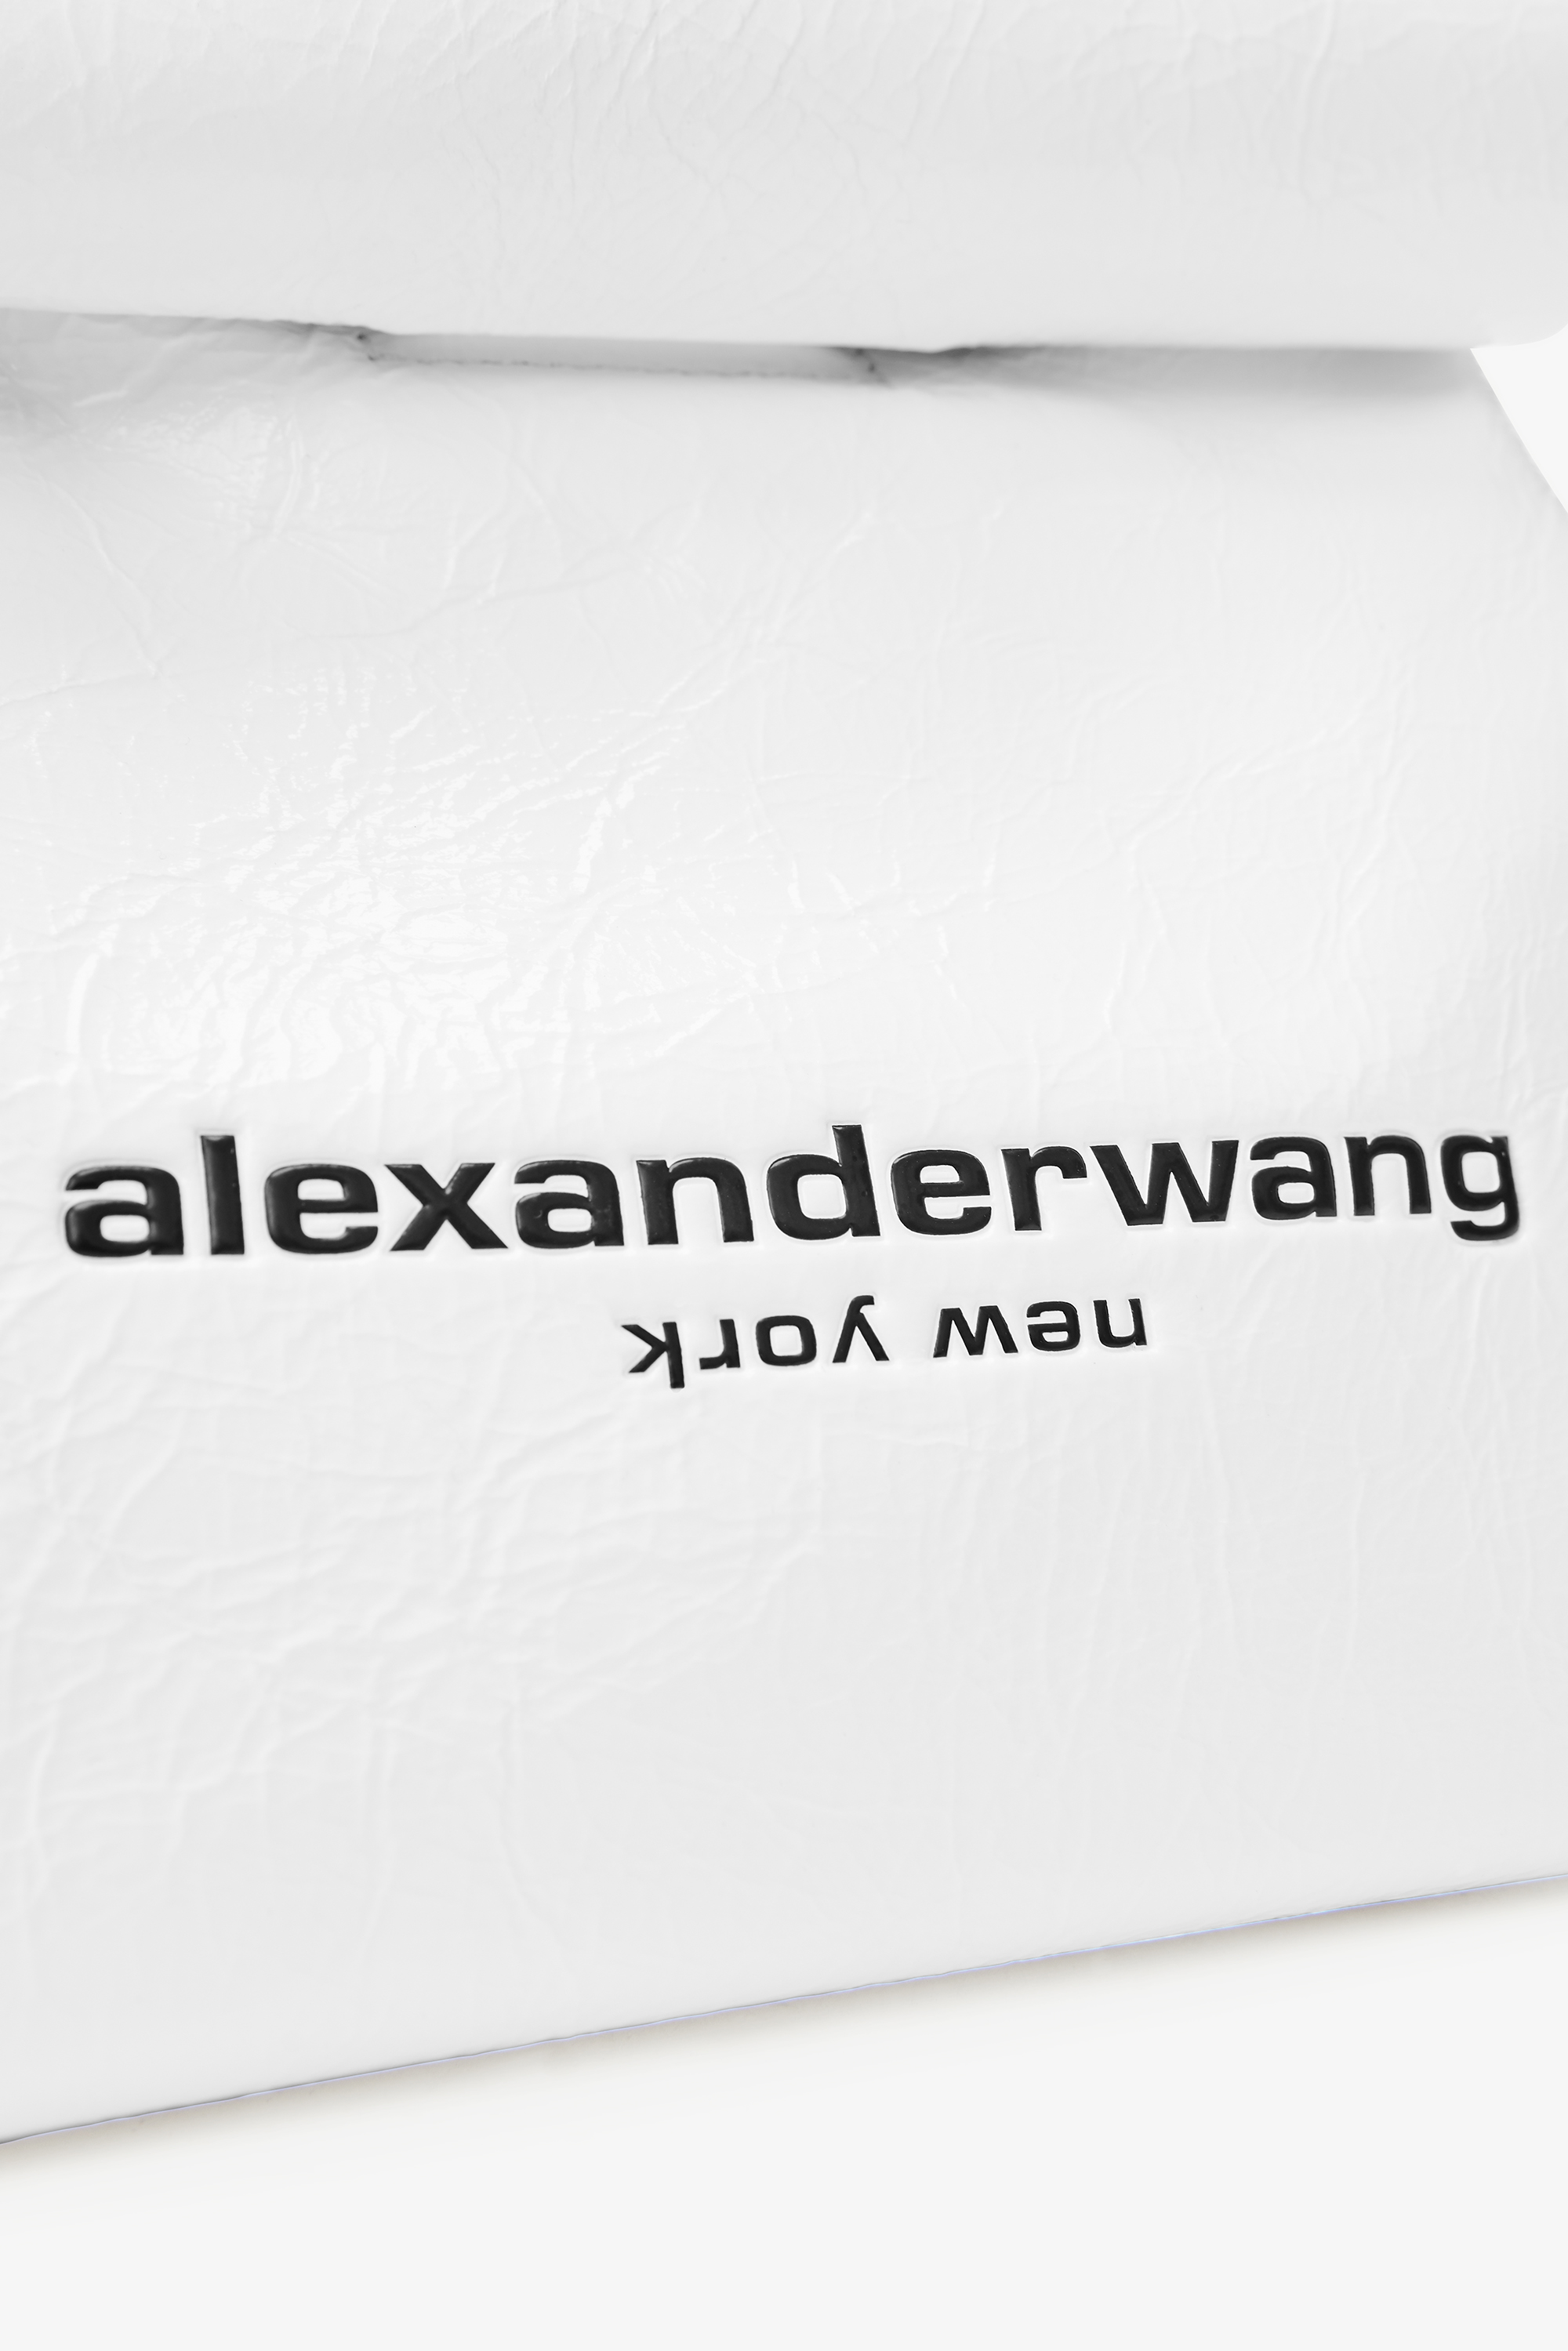 ALEXANDER WANG Leathers LUNCH BAG CLUTCH